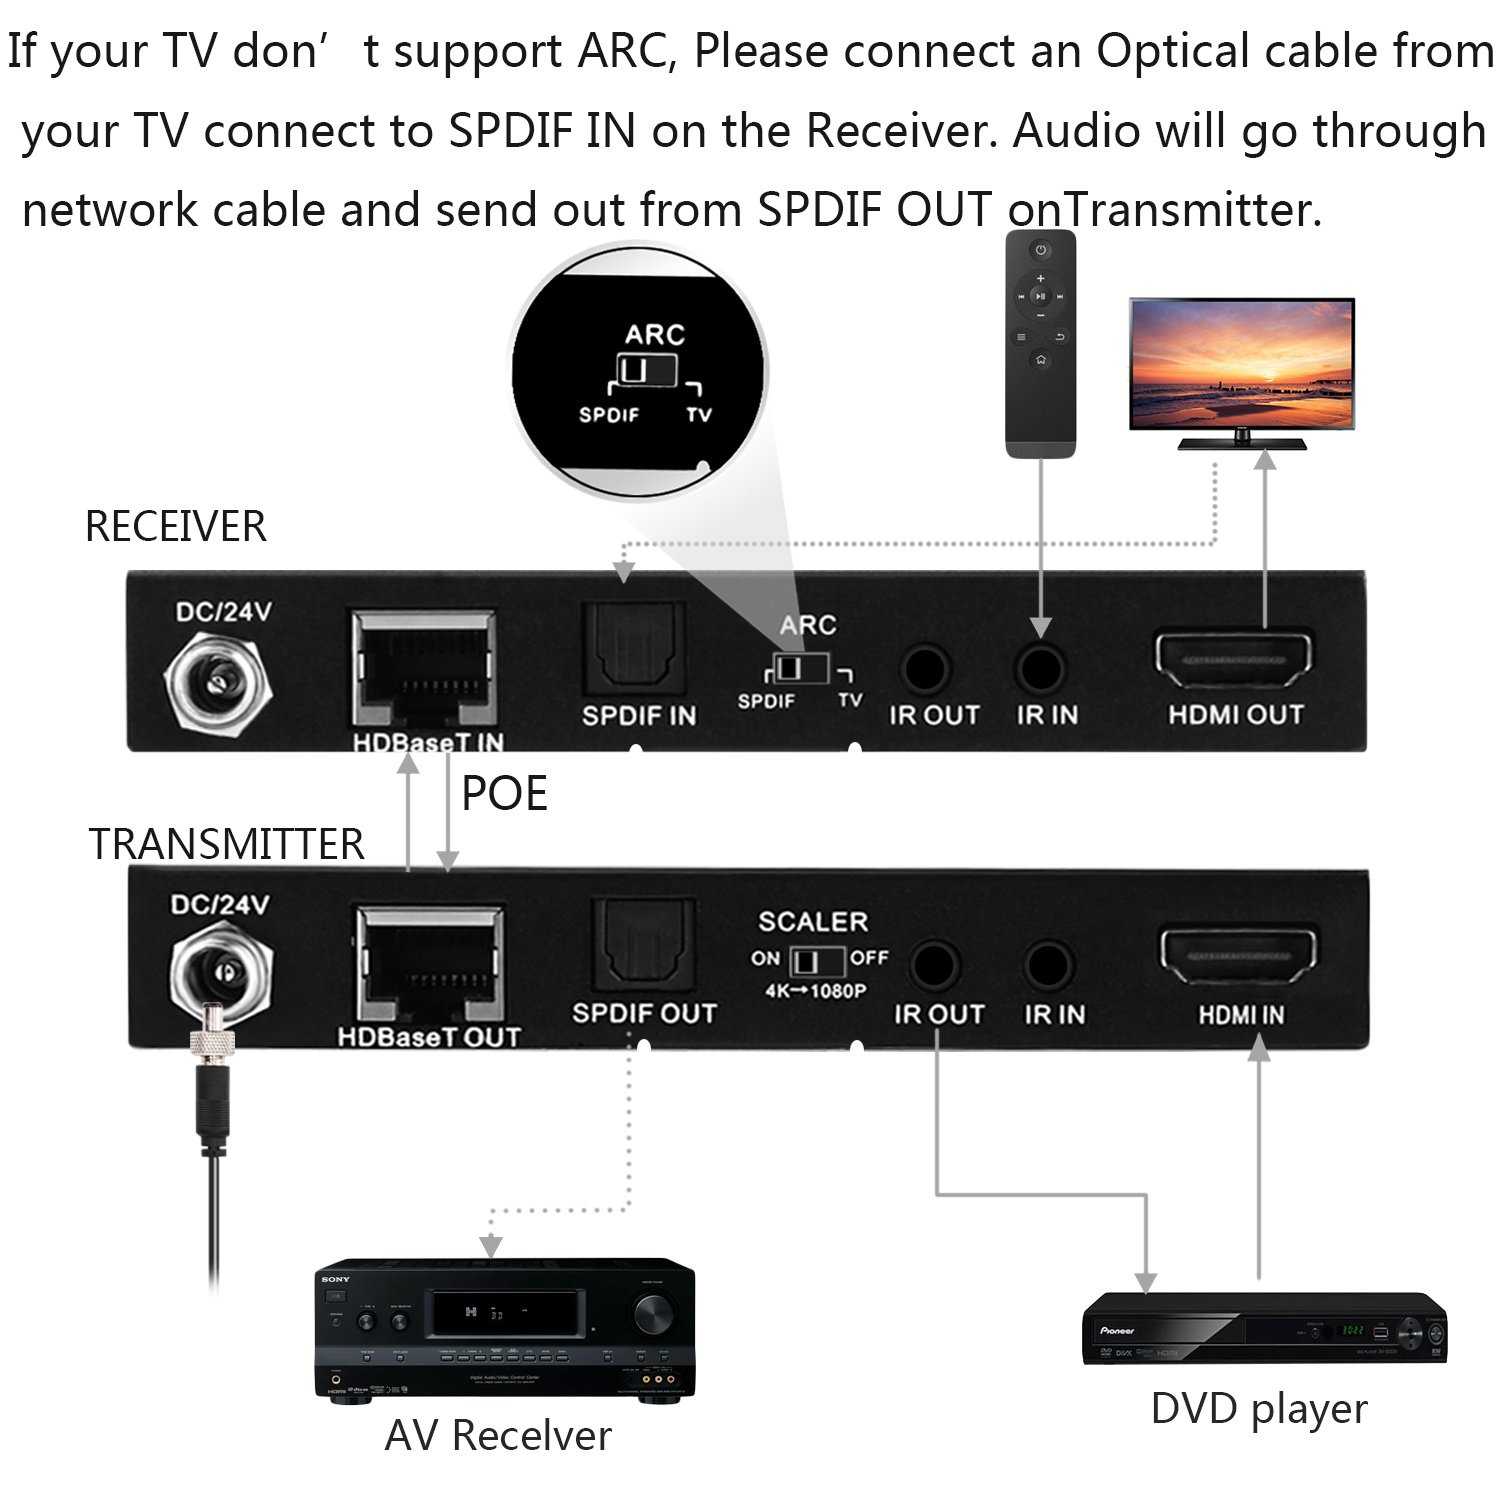 EZCOO 4K HDMI 2.0 Extender ARC HDR Scaler,HDBaseT Extender,Uncompressed 4K 60Hz 4:4:4 18Gbps HDCP 2.2 SPDIF, 4K/ 1080P Scaler Out, 230ft 1080P, 130ft 4K via Cat5e/6a, Bi-directional PoE+IR, CEC, DTS:X by EZCOO (Image #5)